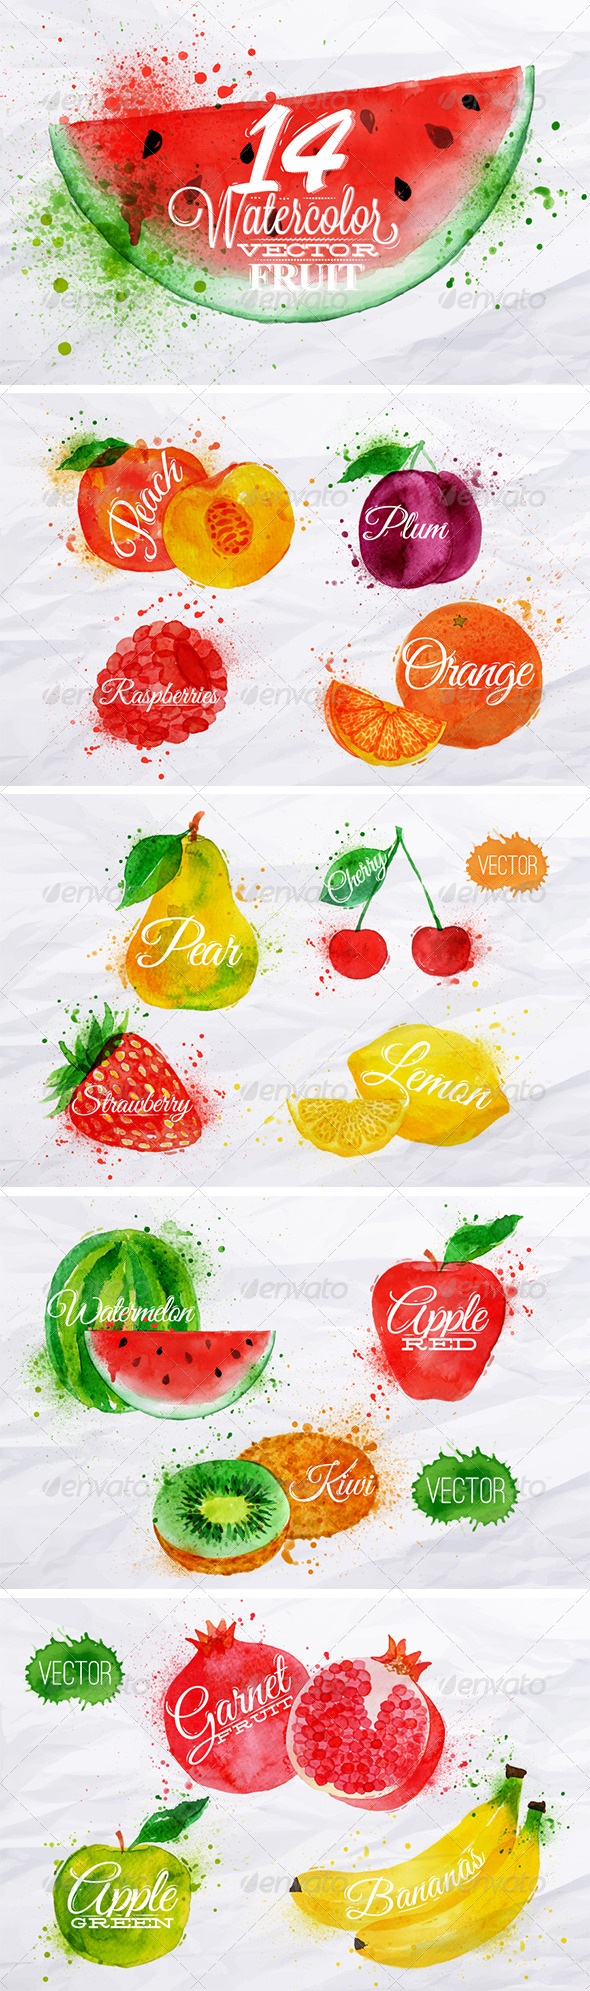 Fruit Watercolor